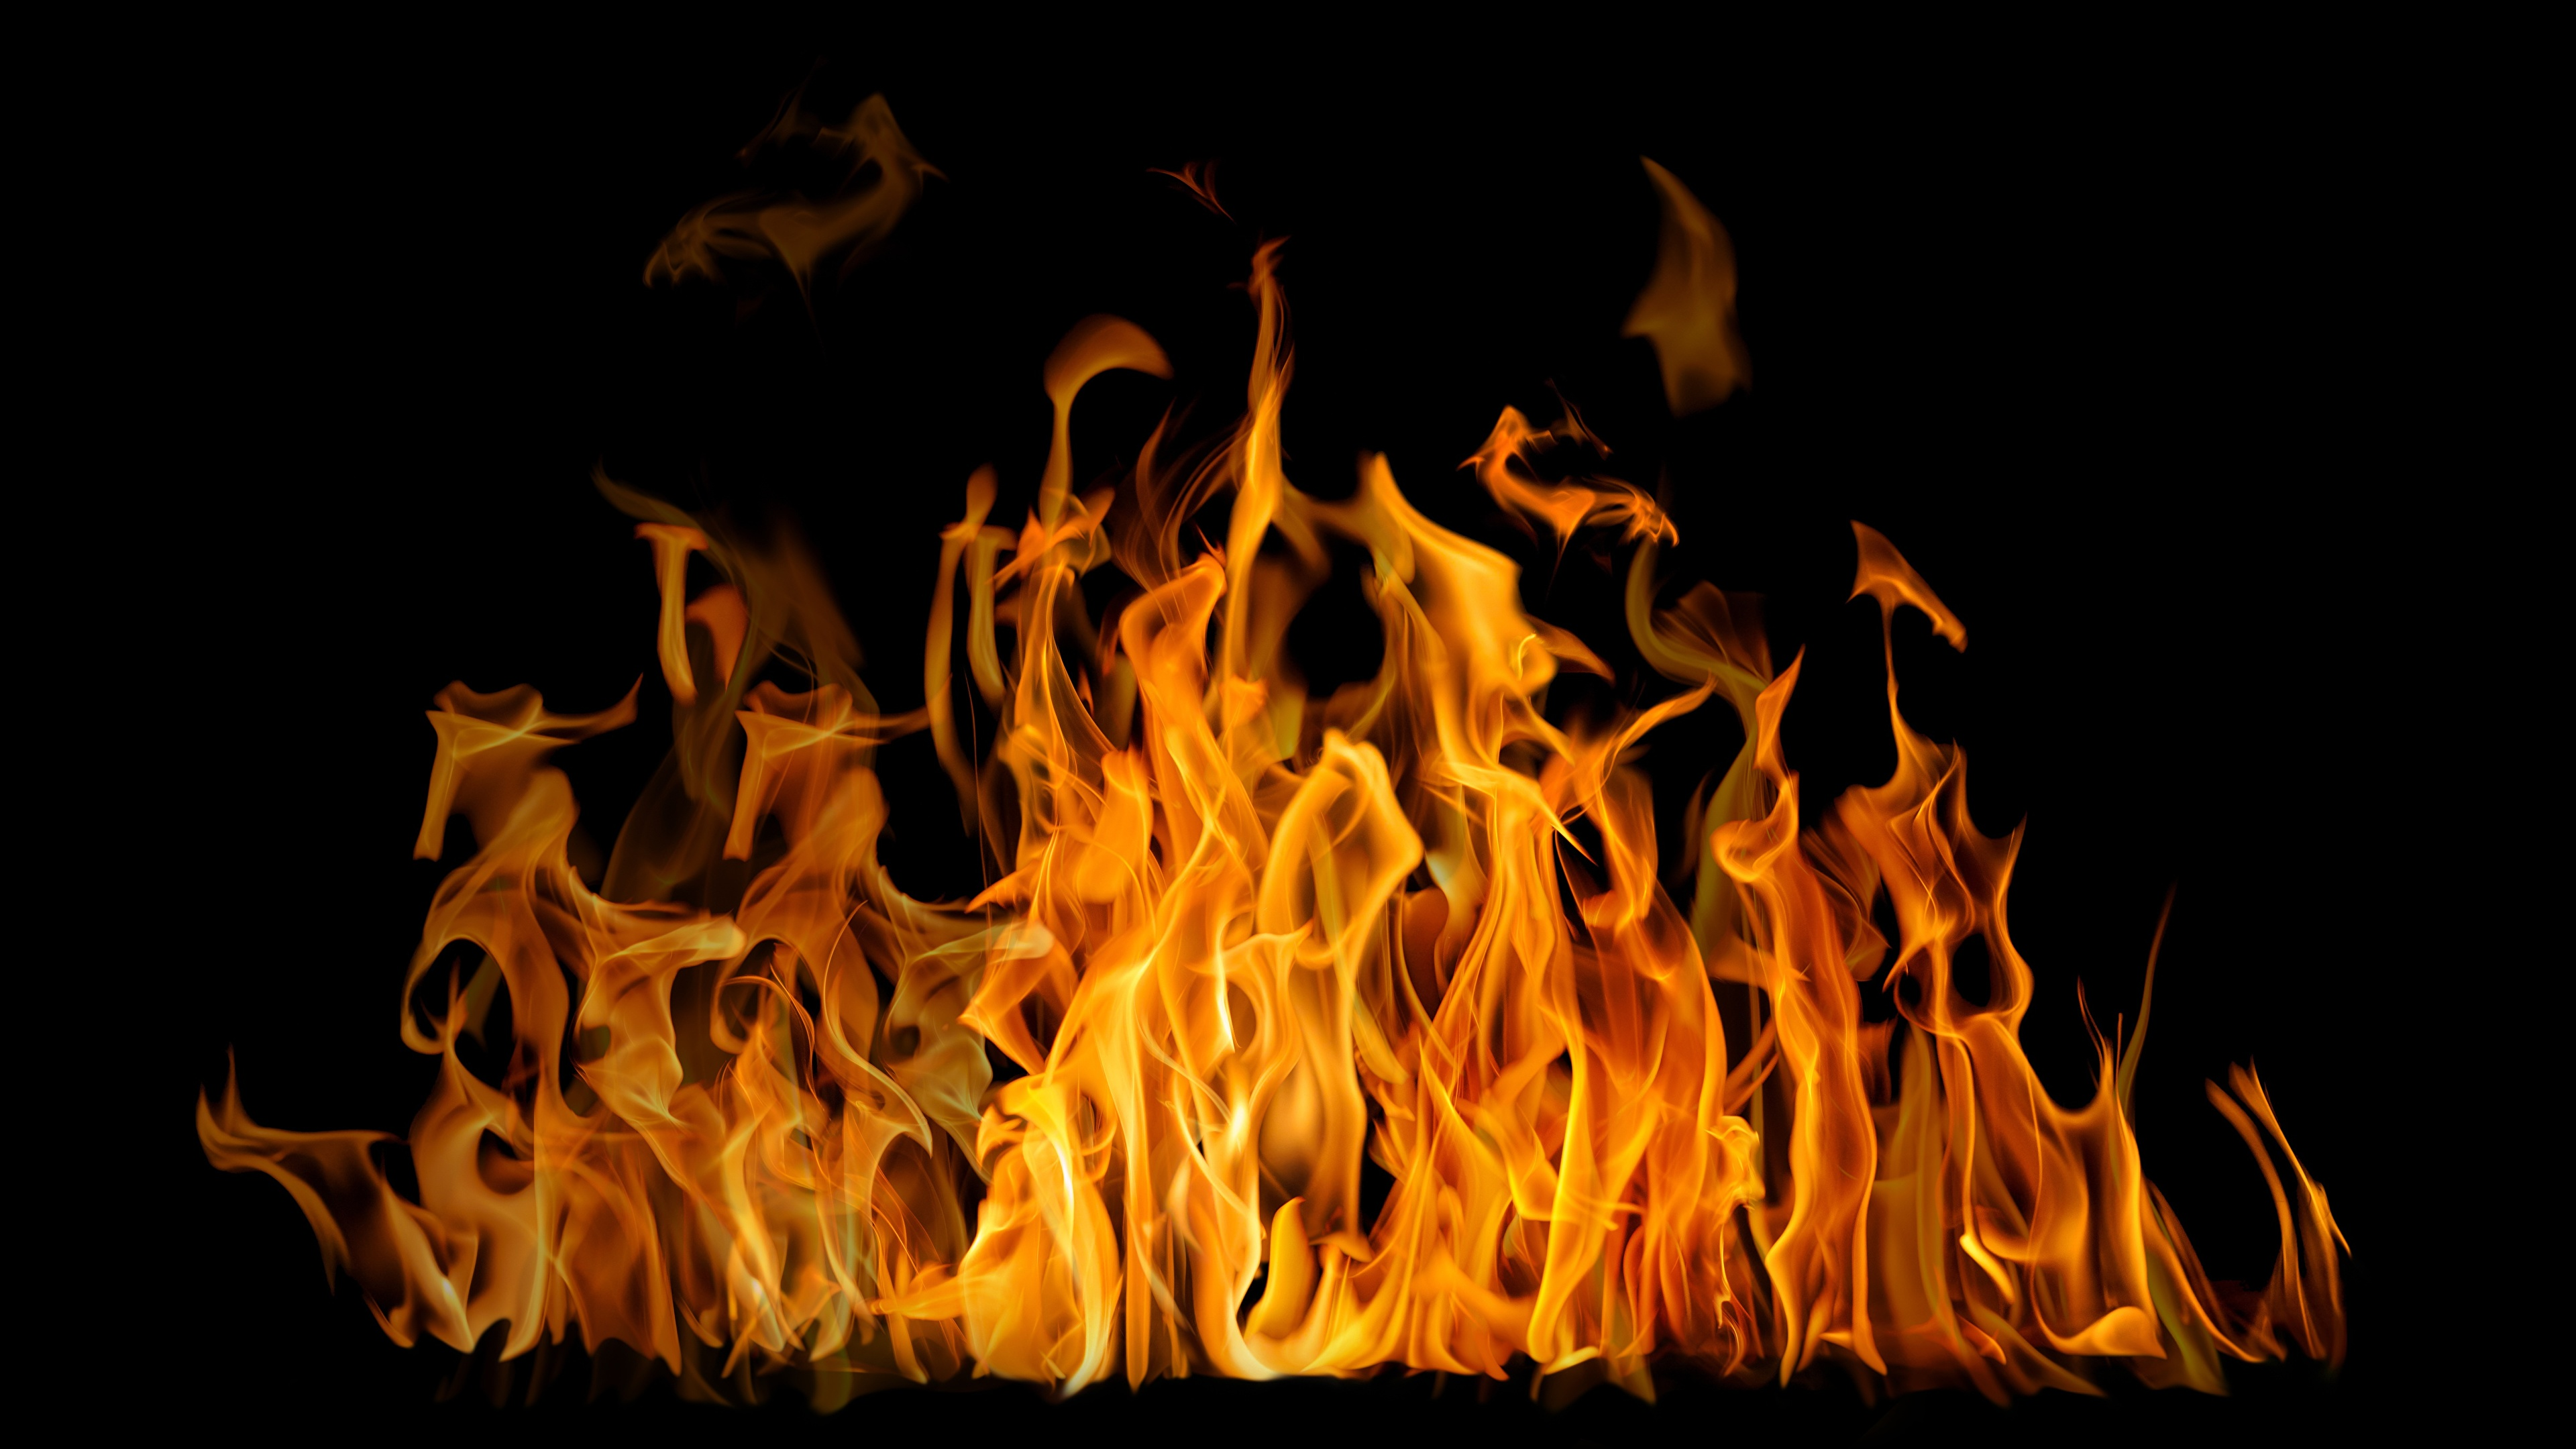 Photo Accelerated Oxidation Flame Black Background 3840x2160